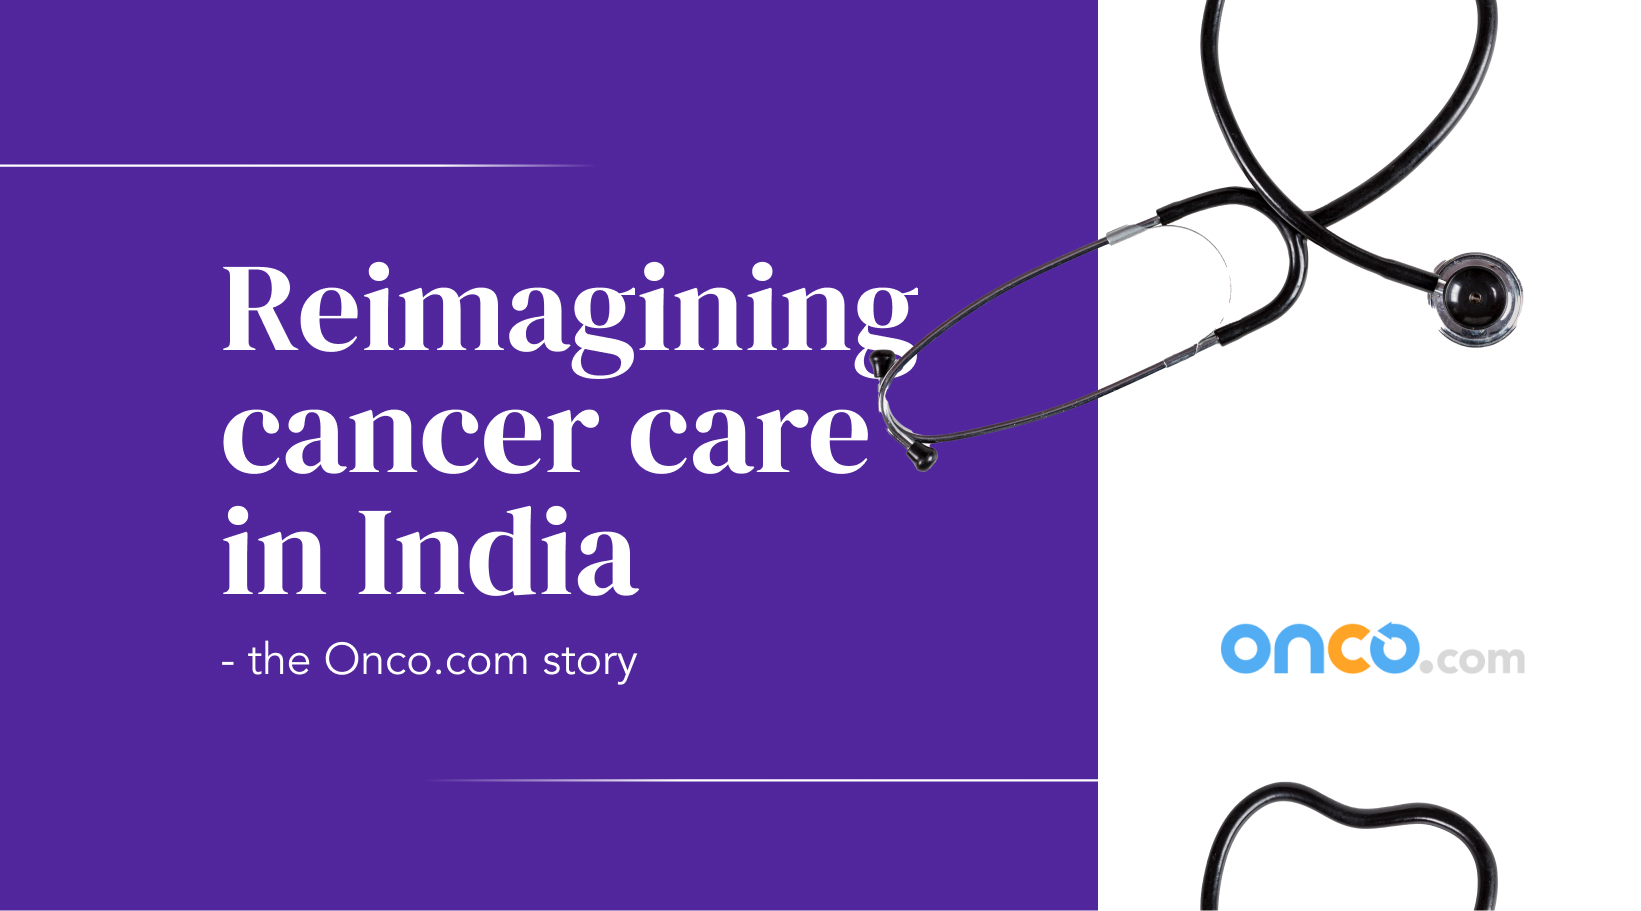 Reimagining Cancer Care in India - the Onco.com Story